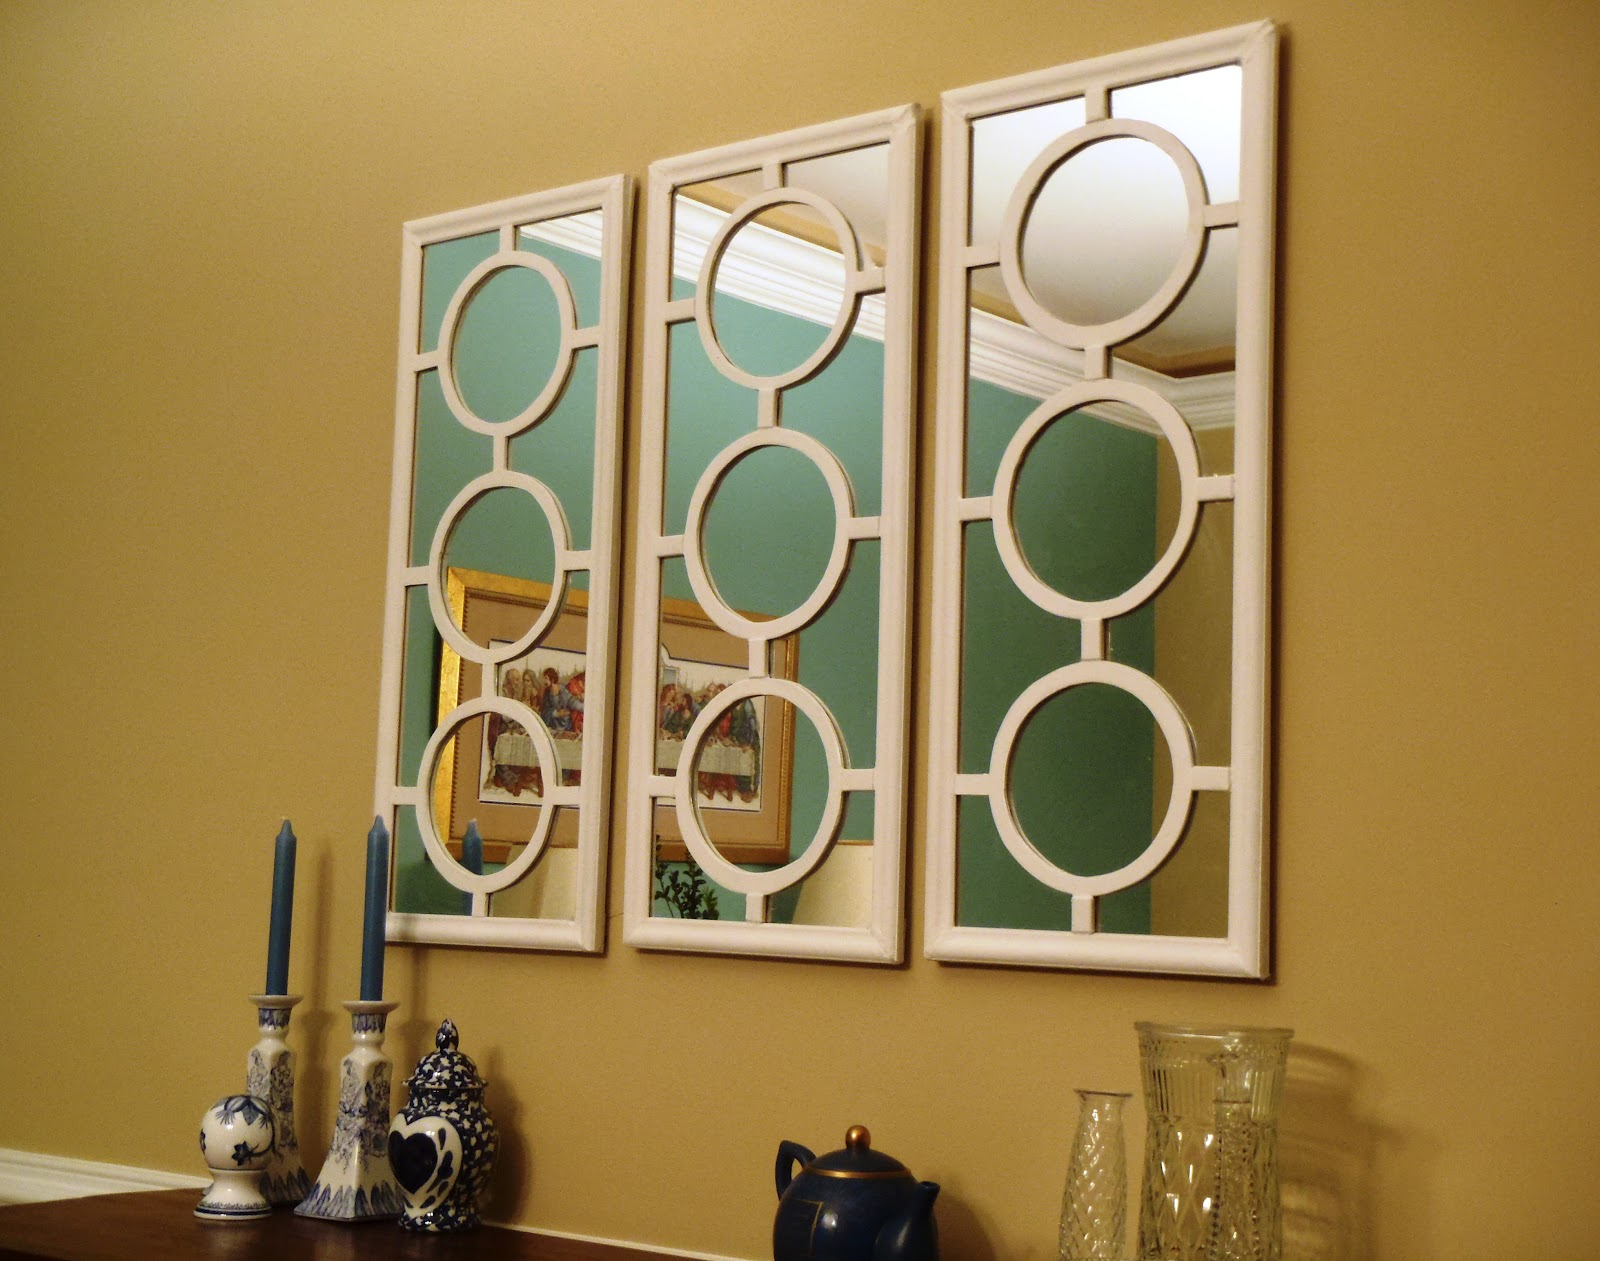 Lazy liz on less dining wall mirror decor - Decoracion con espejos ...